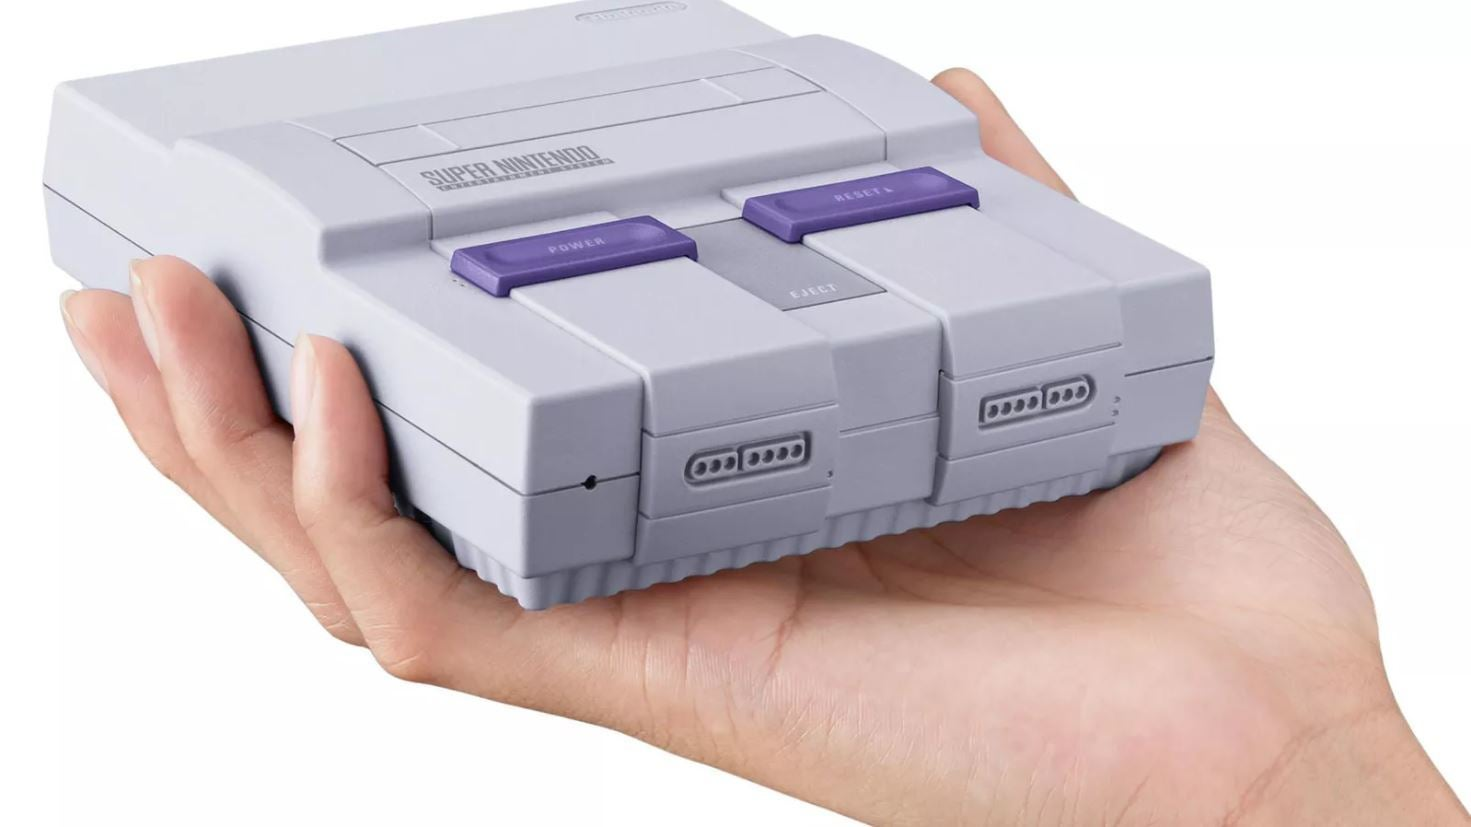 consumer-tech nintendont resellers scalpers super-nintendo-classic